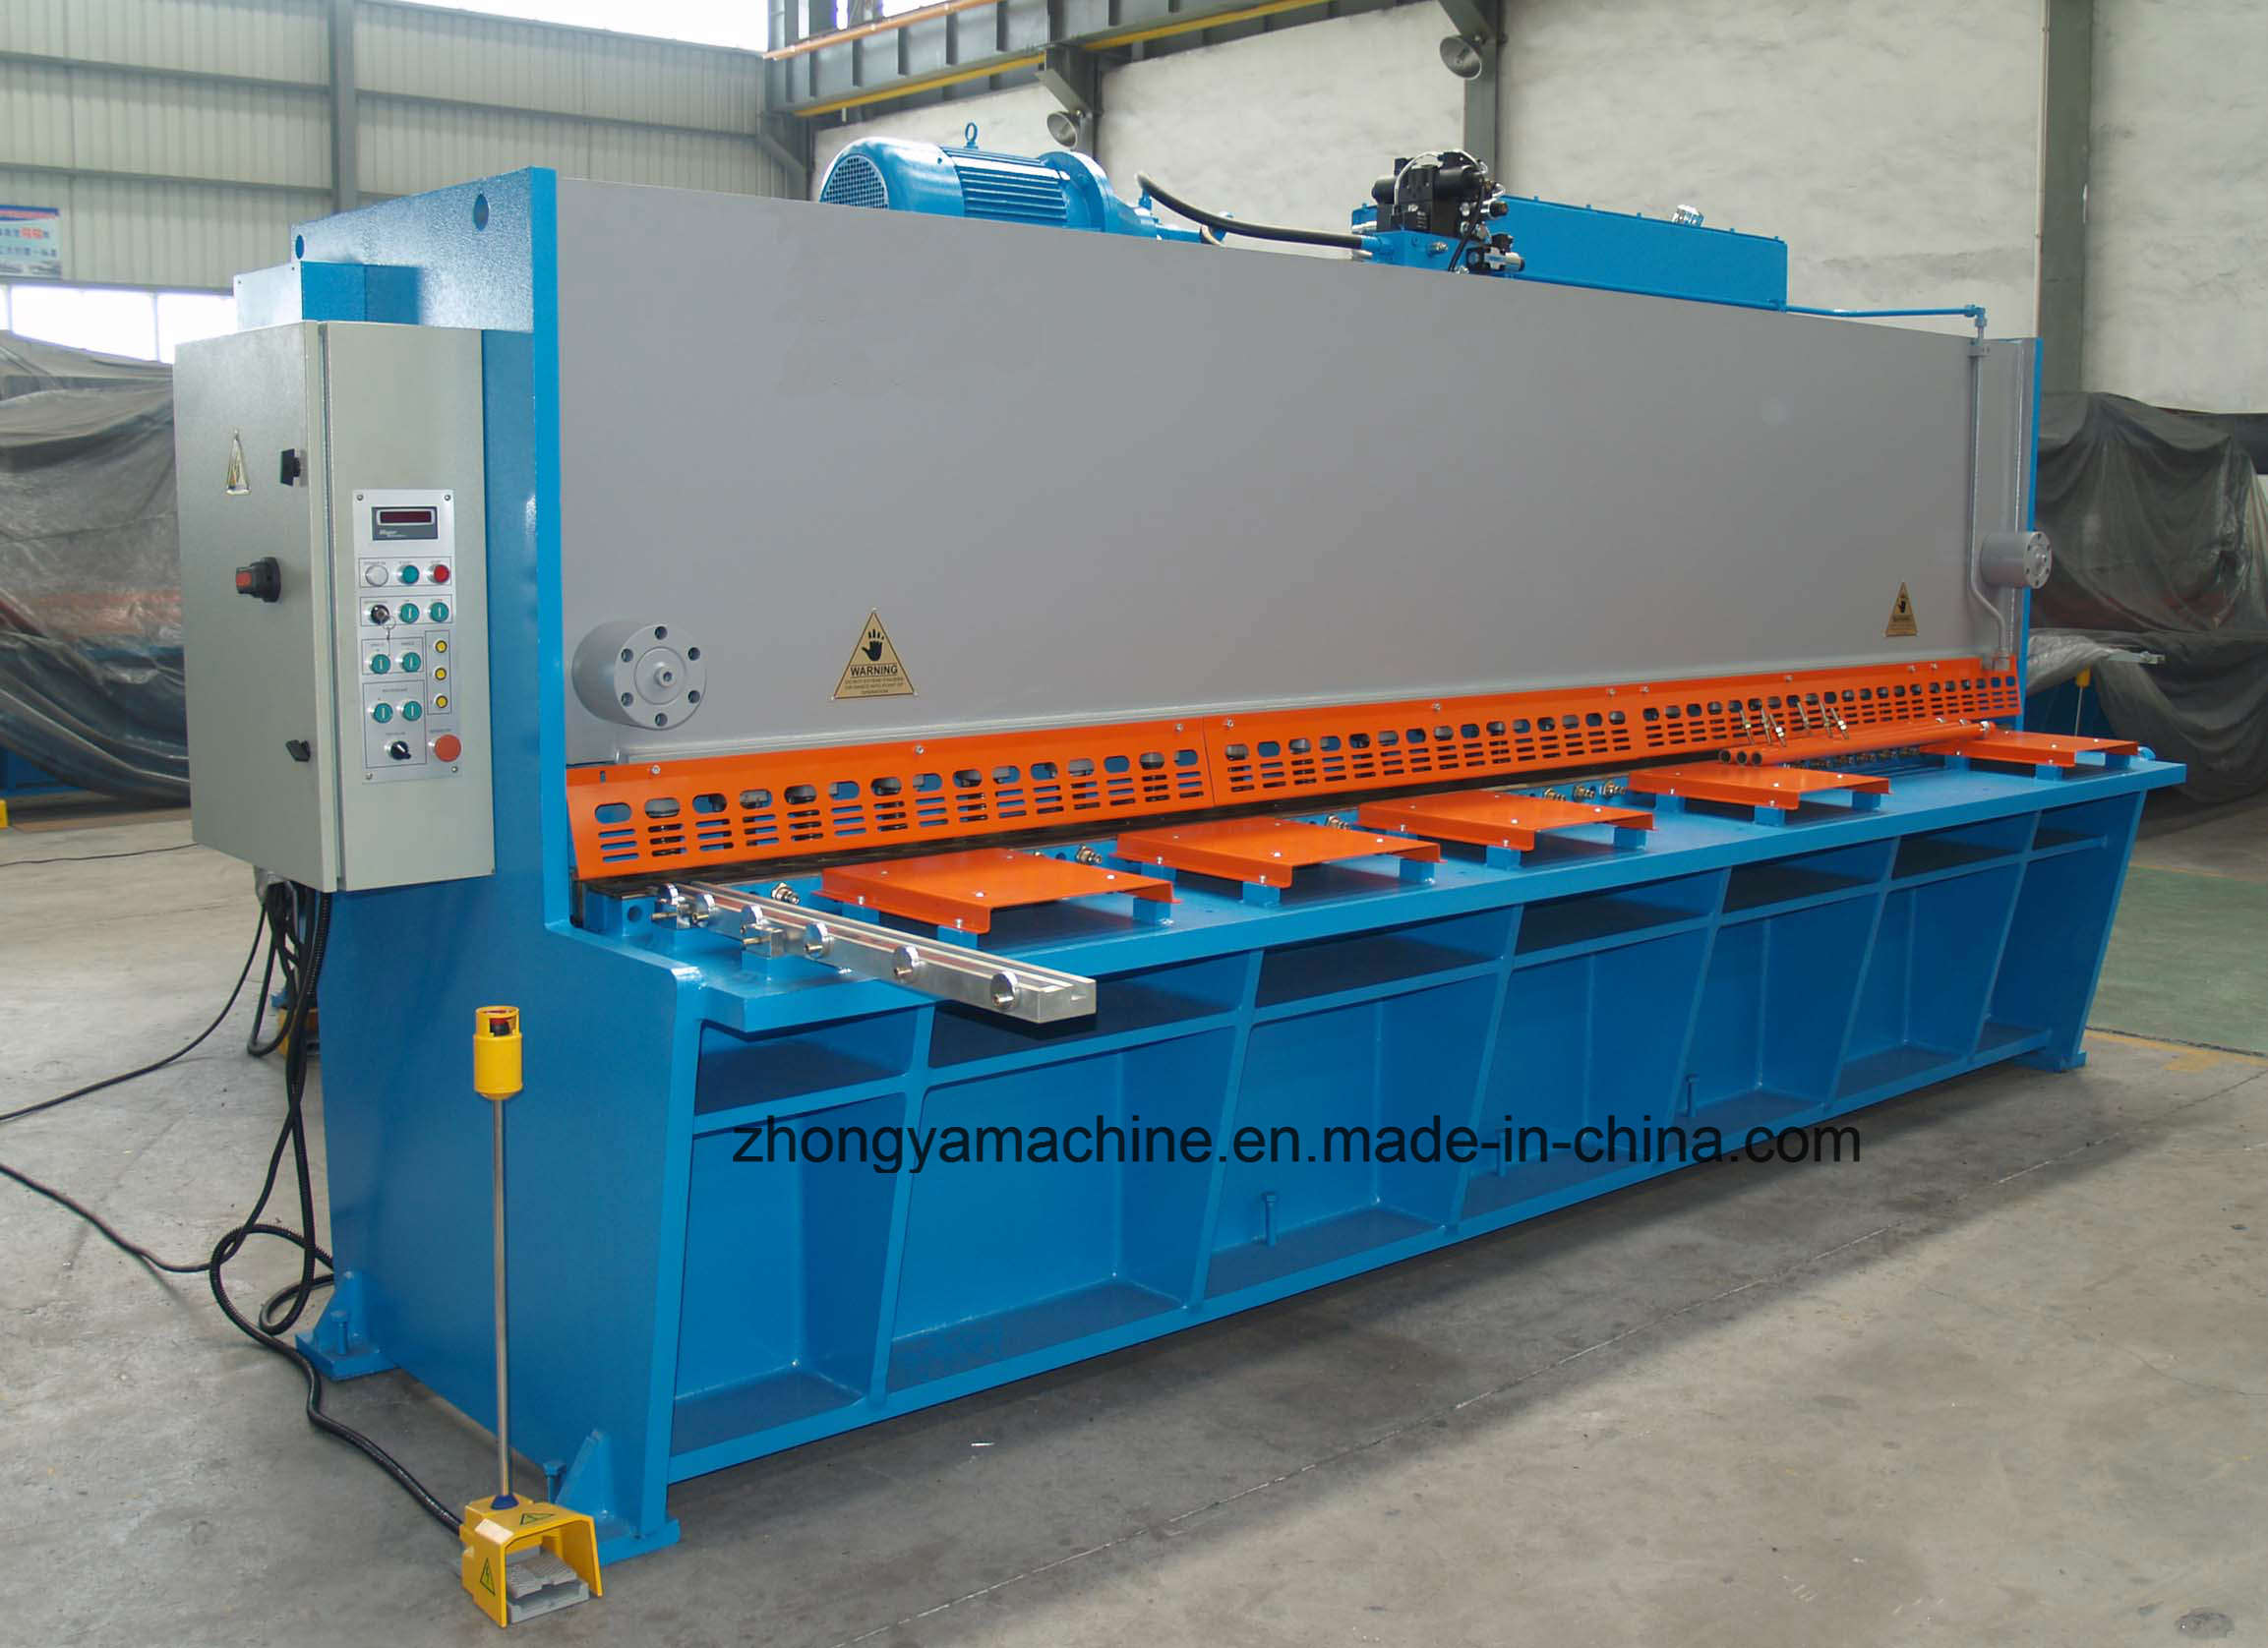 Good Price Hydraulic Shearing Machine QC11y-6mm/2500mm